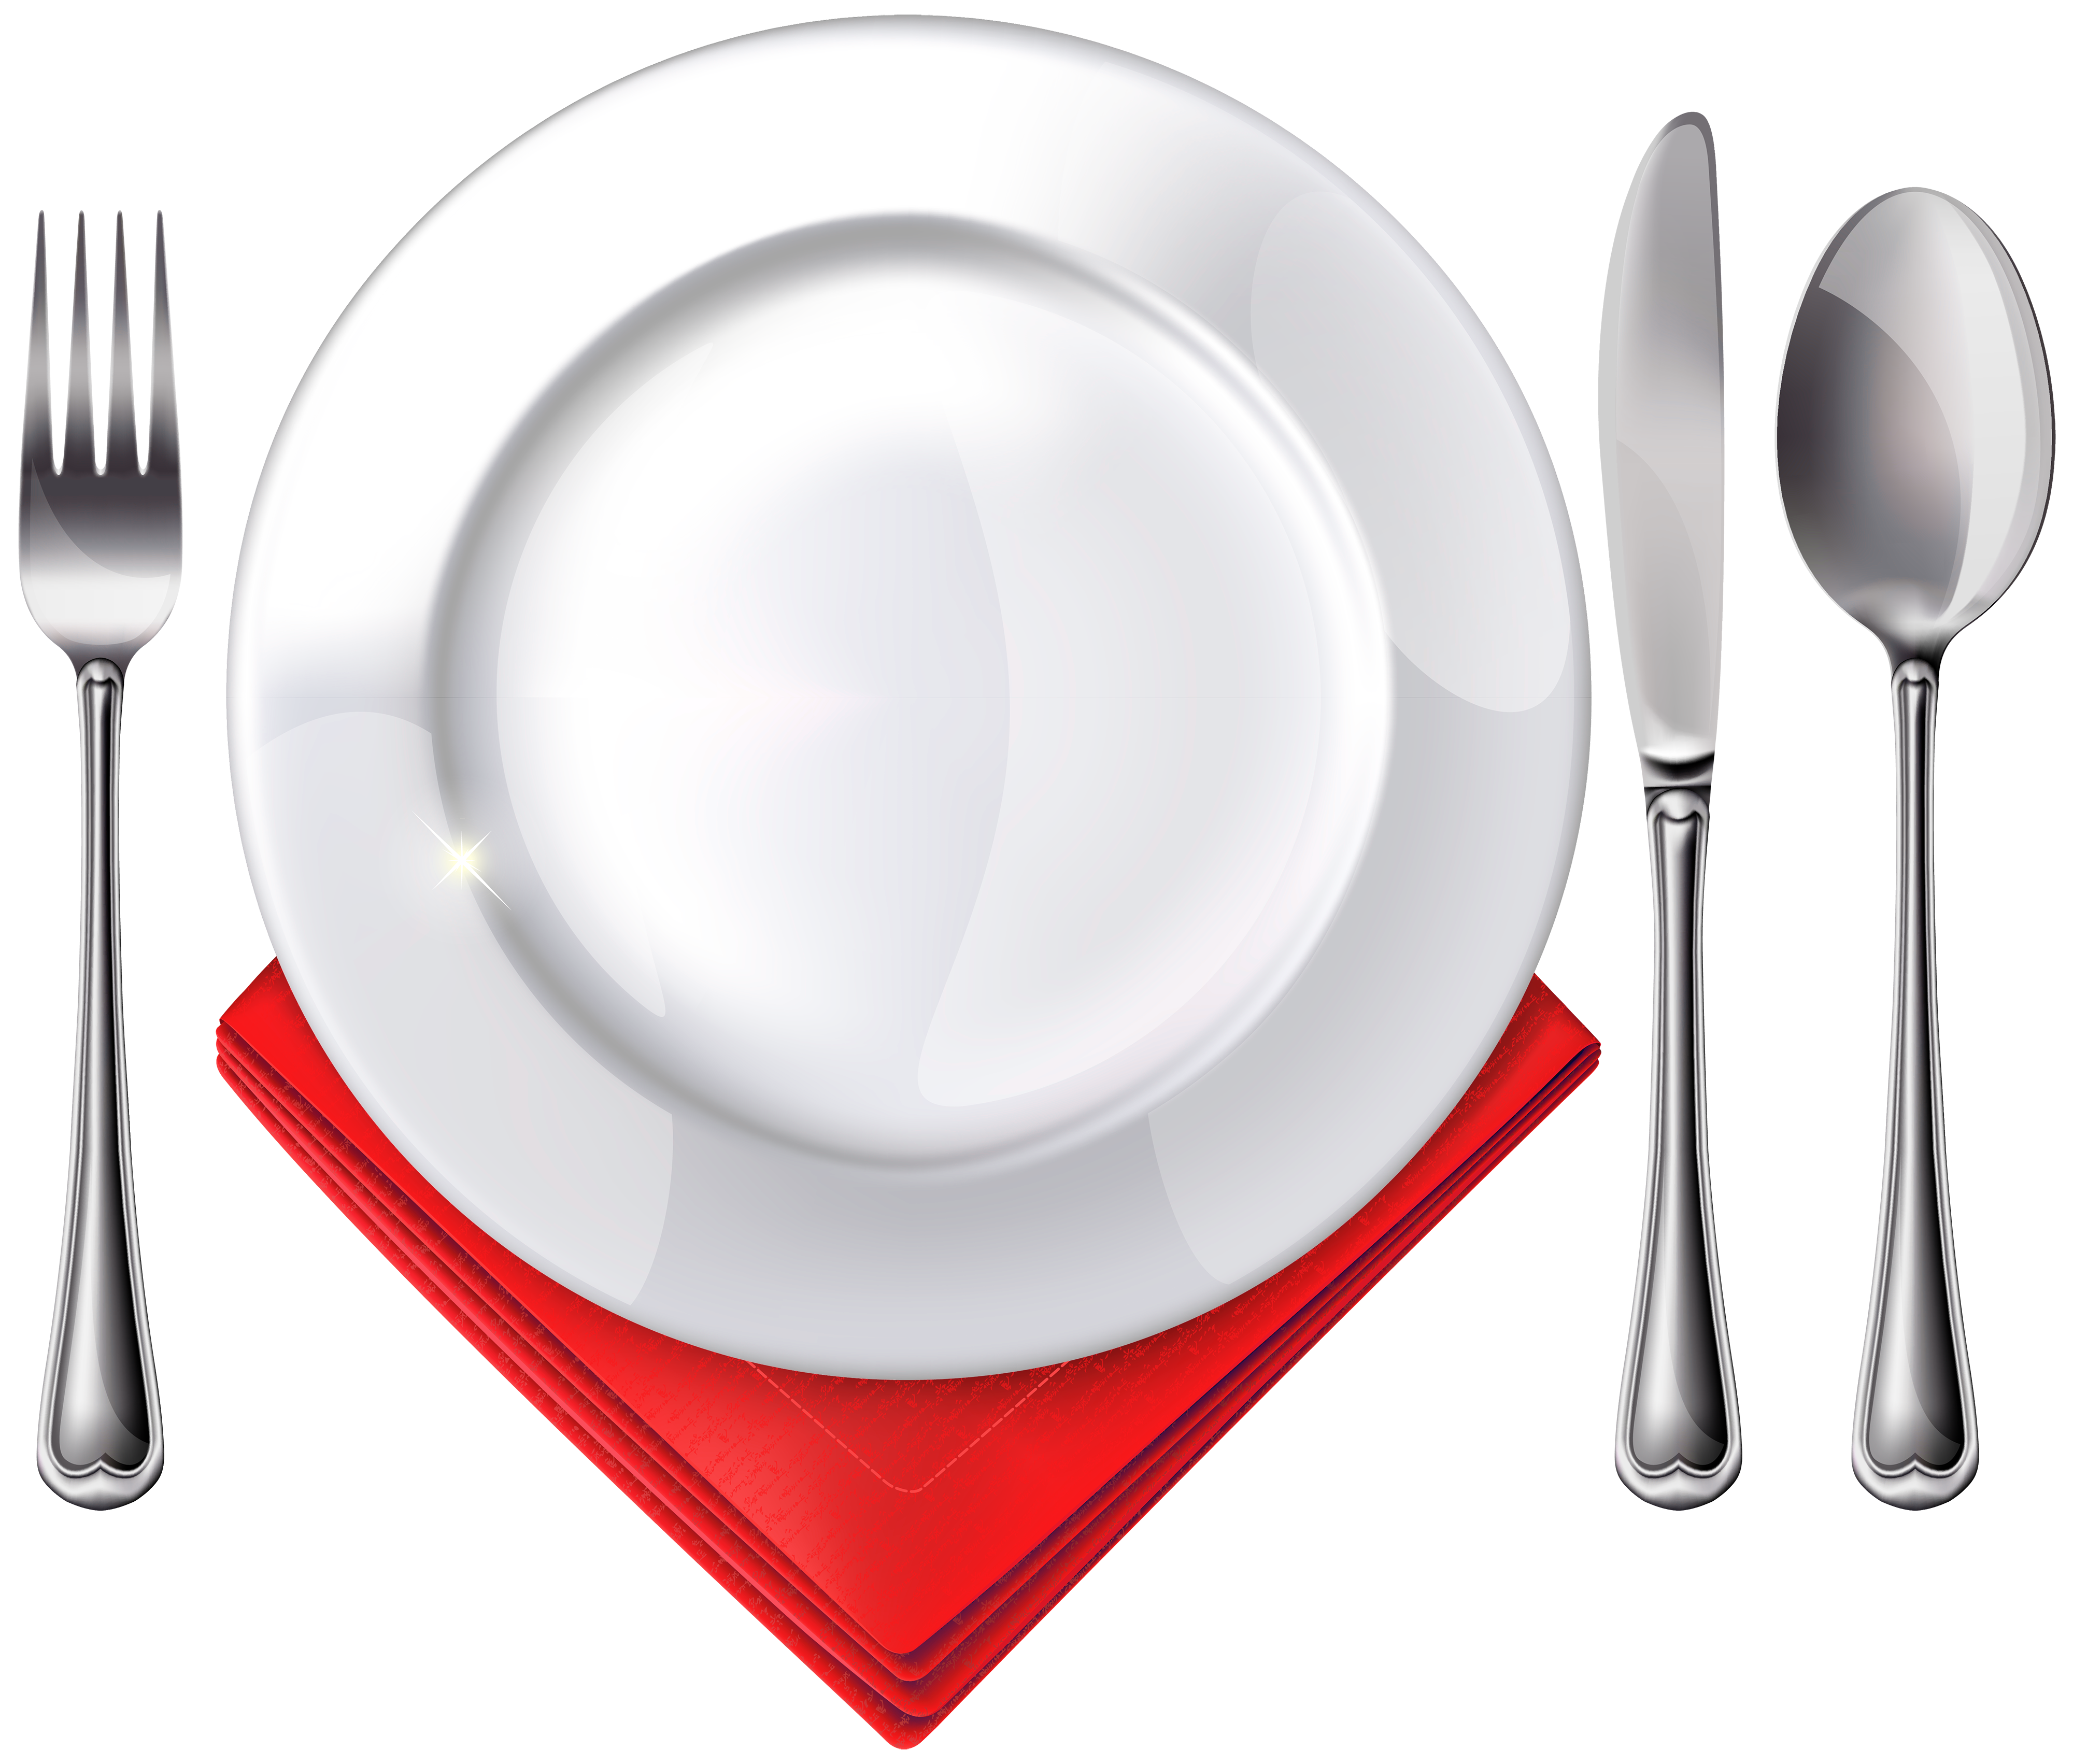 Dinner plate clipart png. Spoon knife fork and